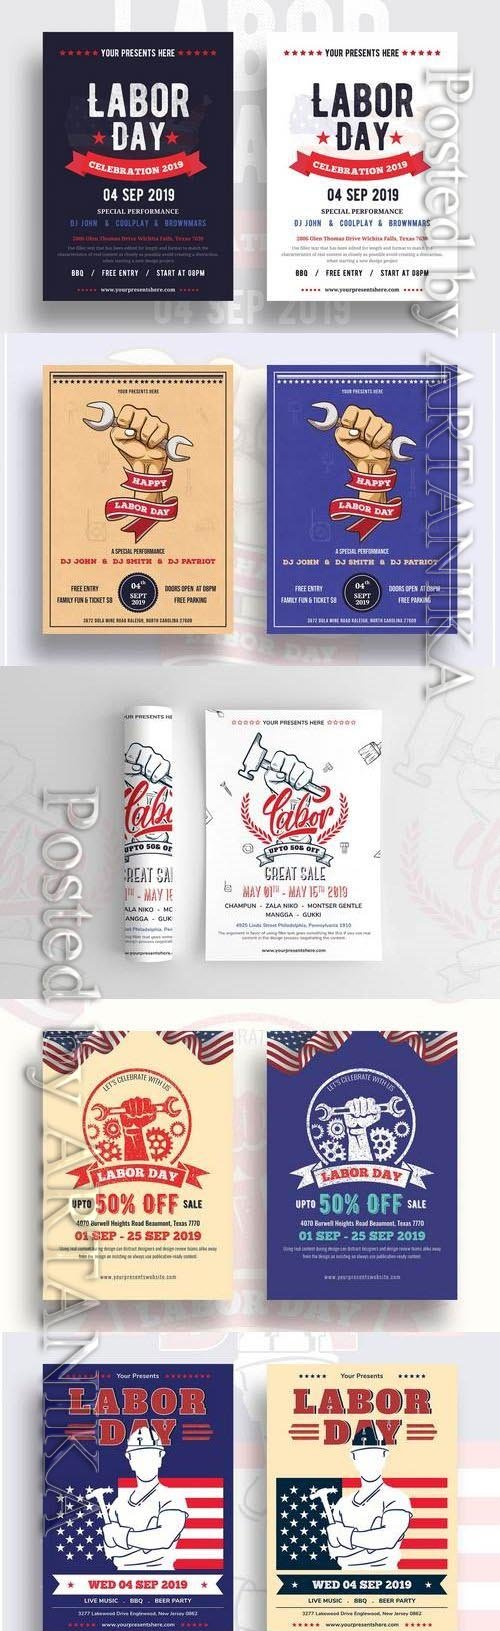 Labor Day Flyer Template 3